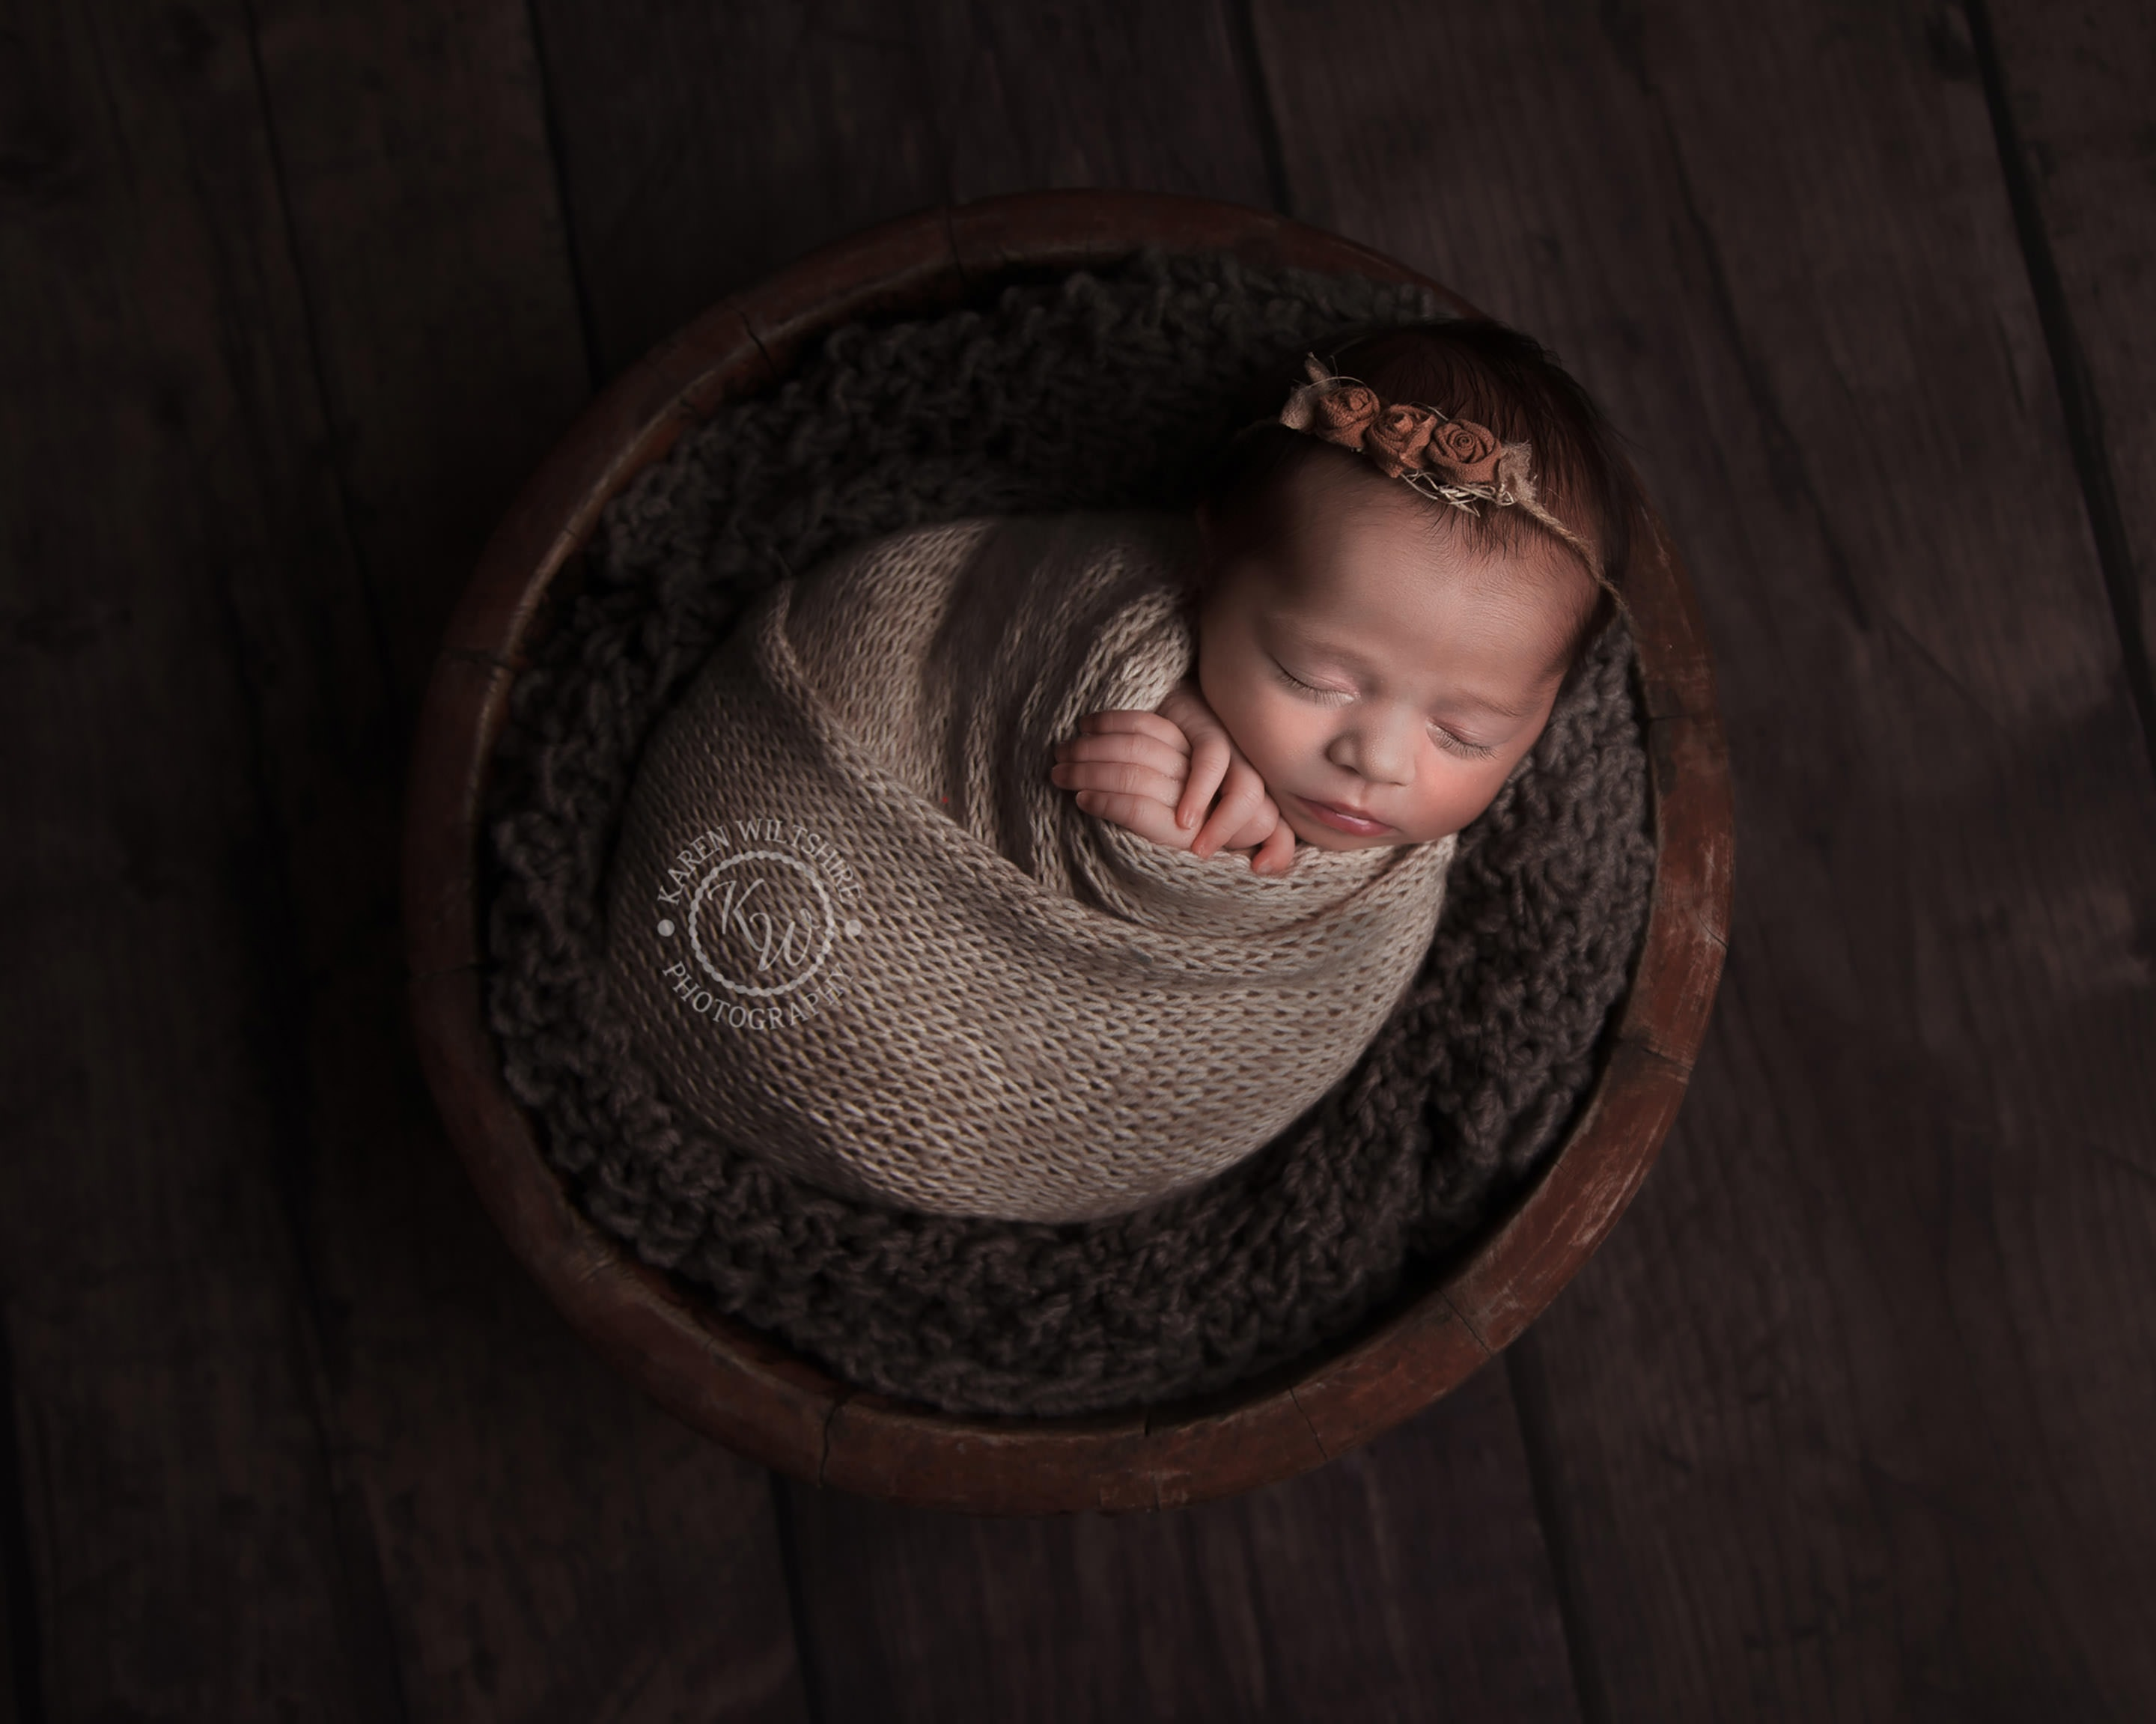 Newborn baby in brown wrap and headband placed in a bowl for newborn photos